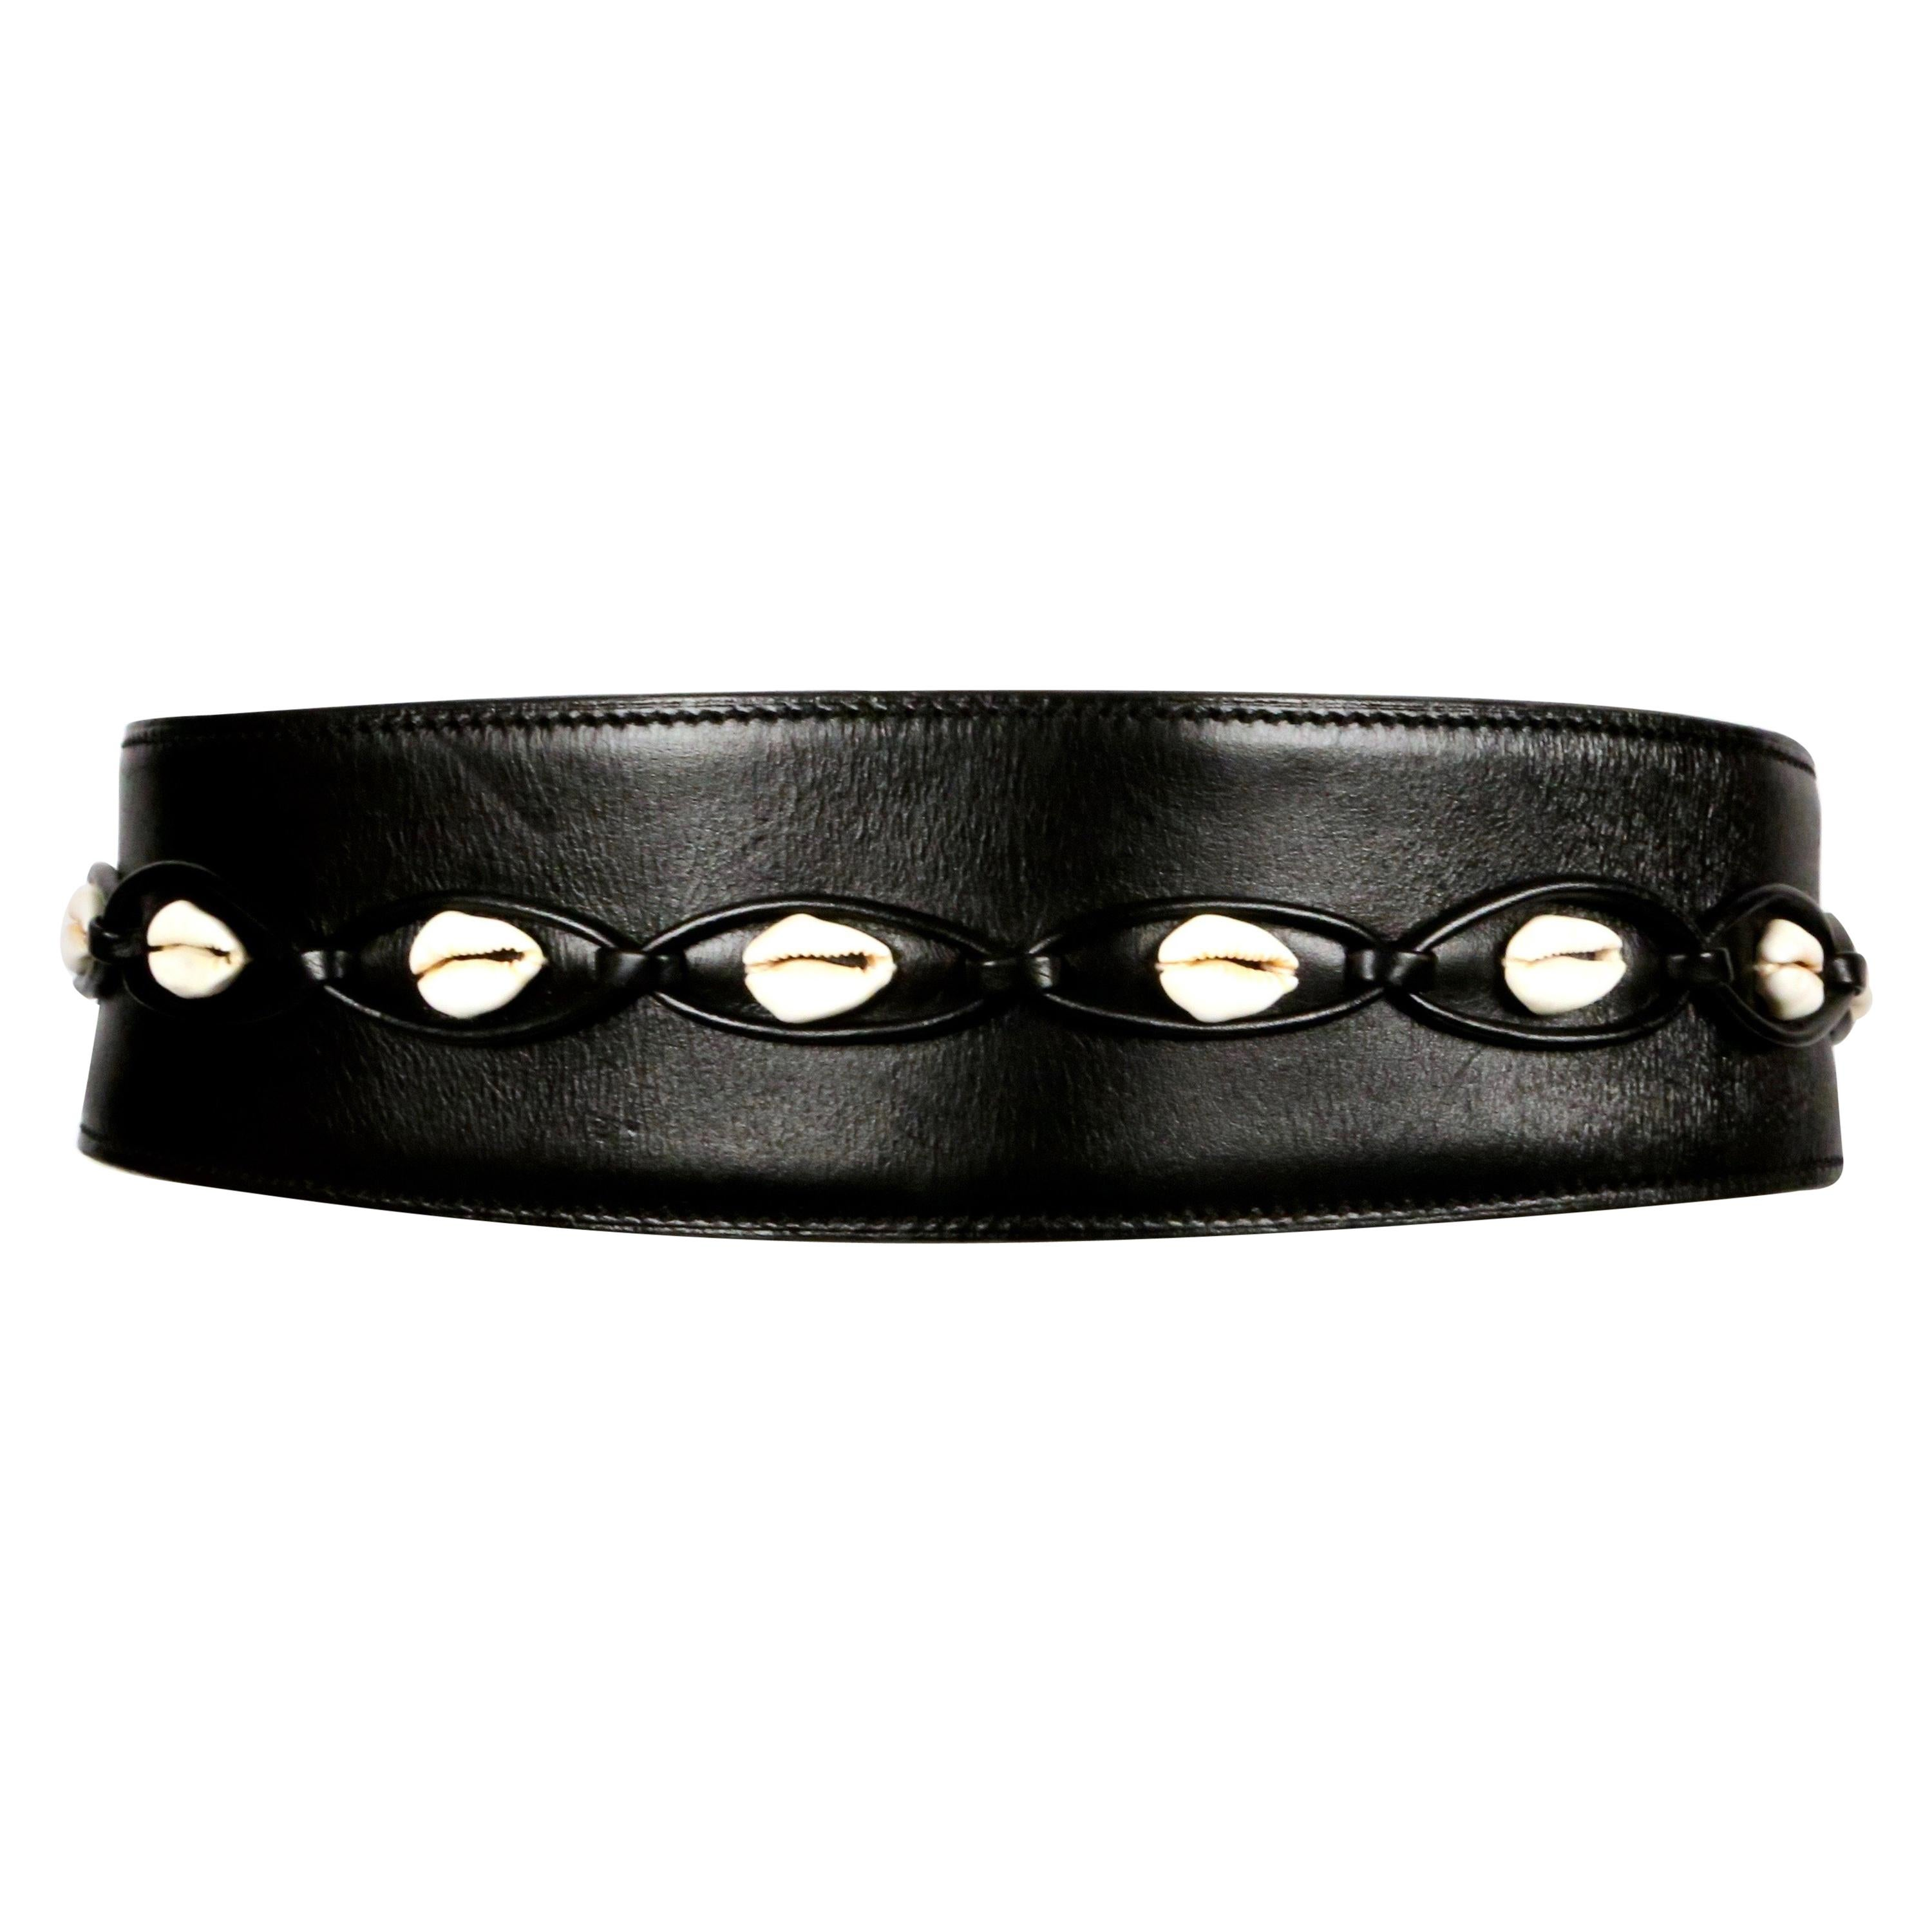 1990 AZZEDINE ALAIA black leather runway belt with cowrie shells